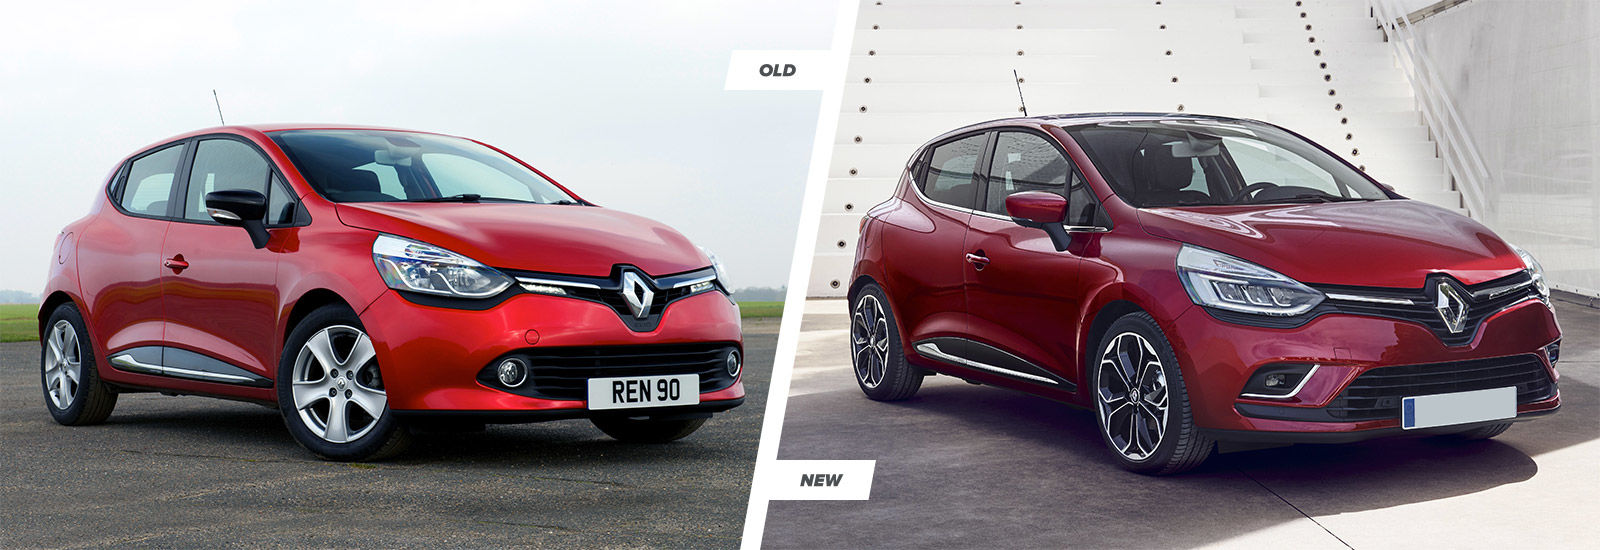 renault clio facelift price specs and release date carwow. Black Bedroom Furniture Sets. Home Design Ideas